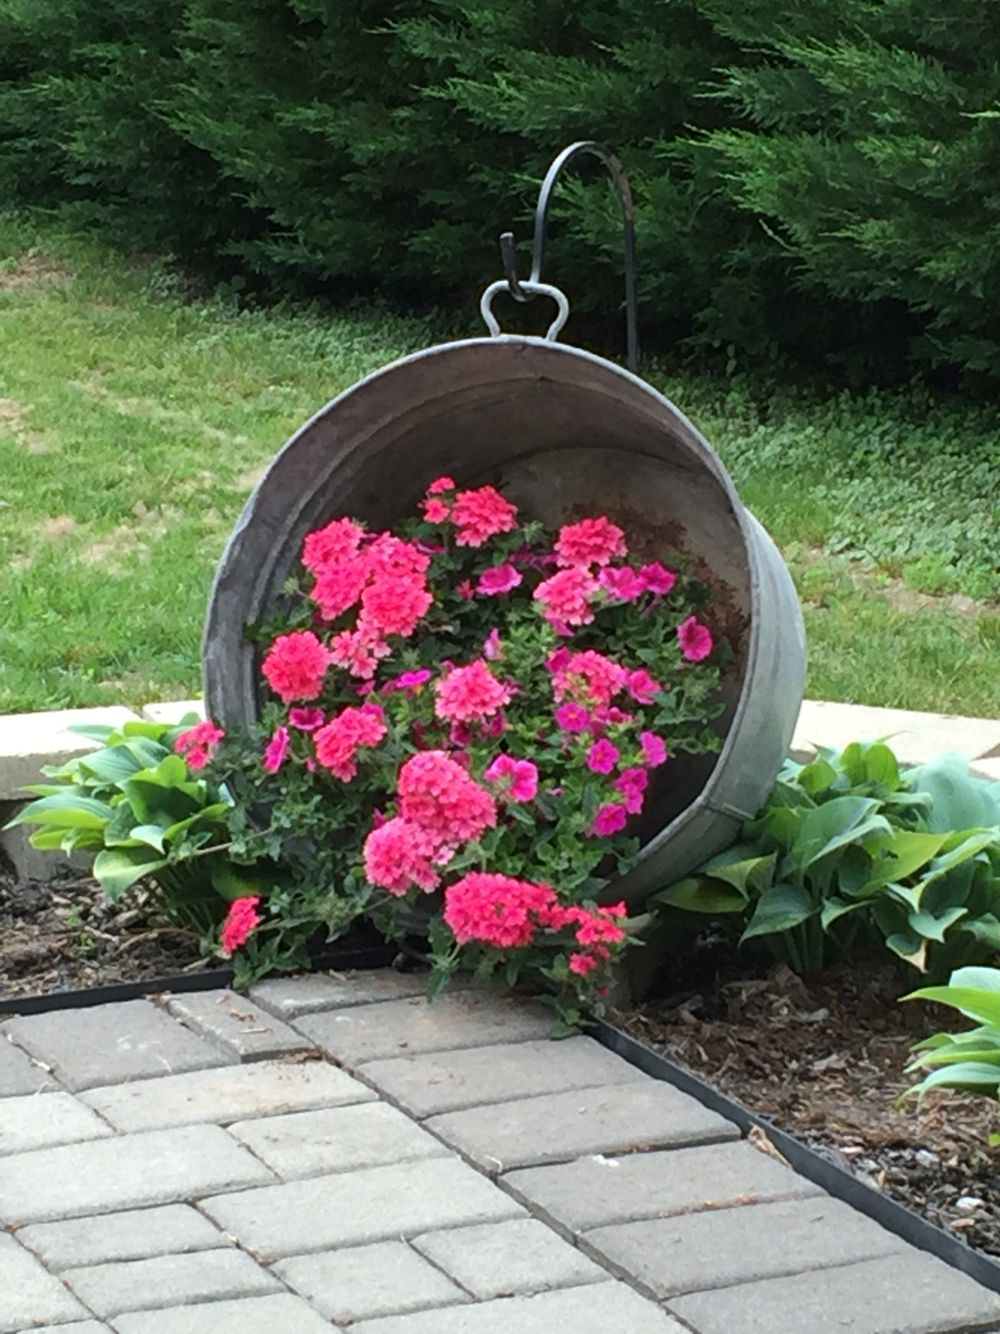 Hanging Washtub With Flowers Saw This On Pinterest Years Ago And Finally Got Around T Container Gardening Garden Yard Ideas Diy